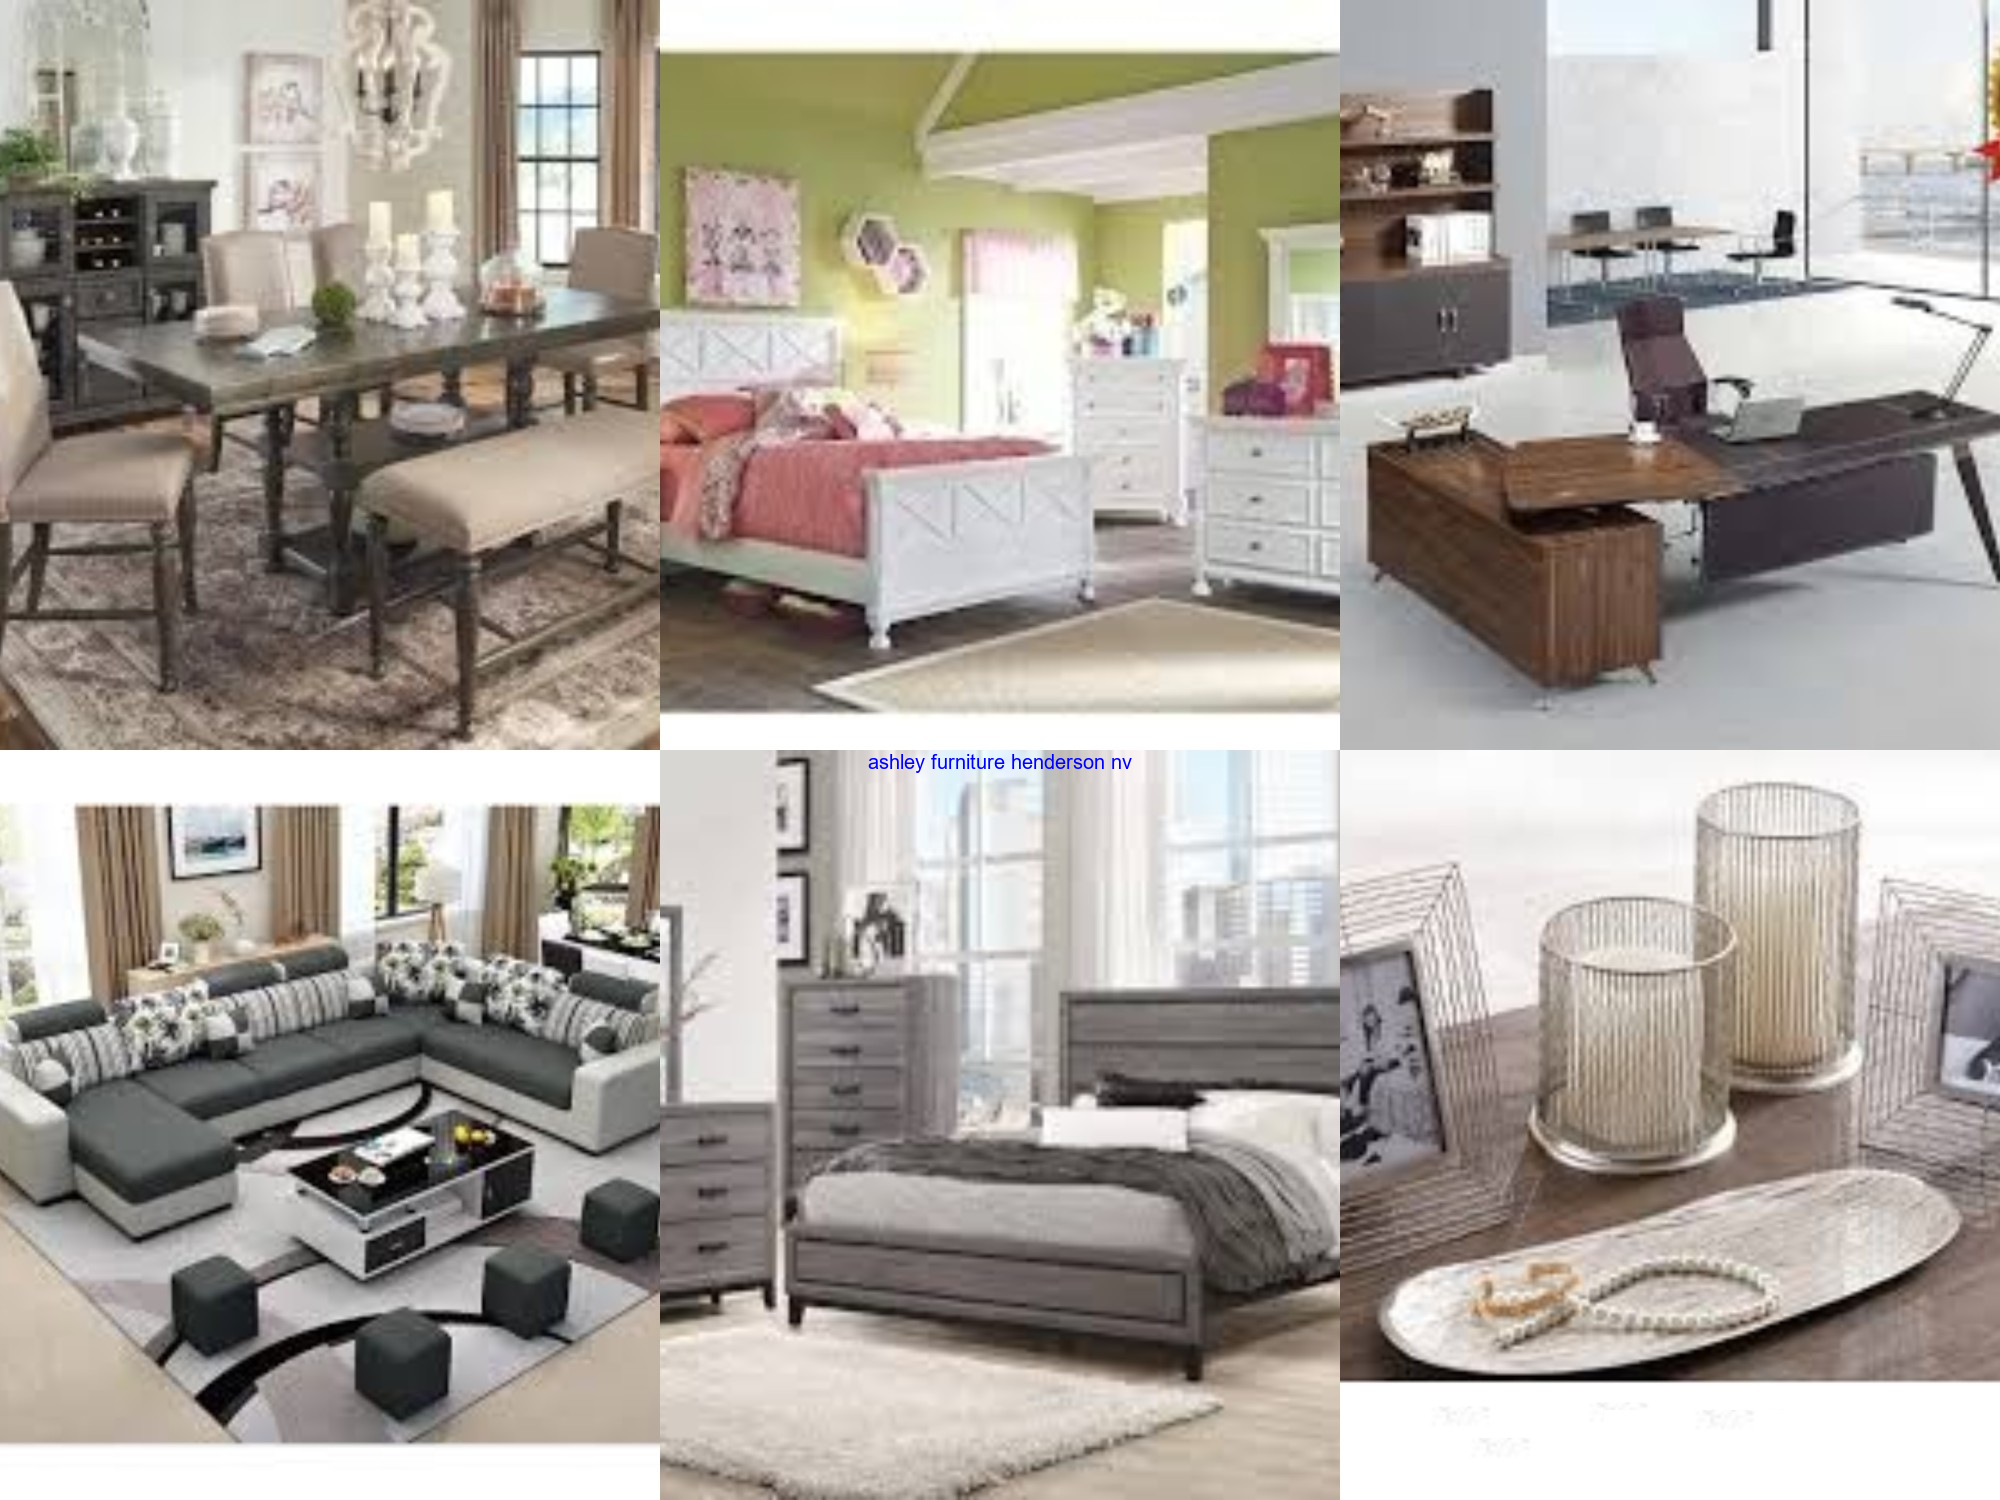 Ashley Furniture Henderson Nv I Would Recommend That You Visit